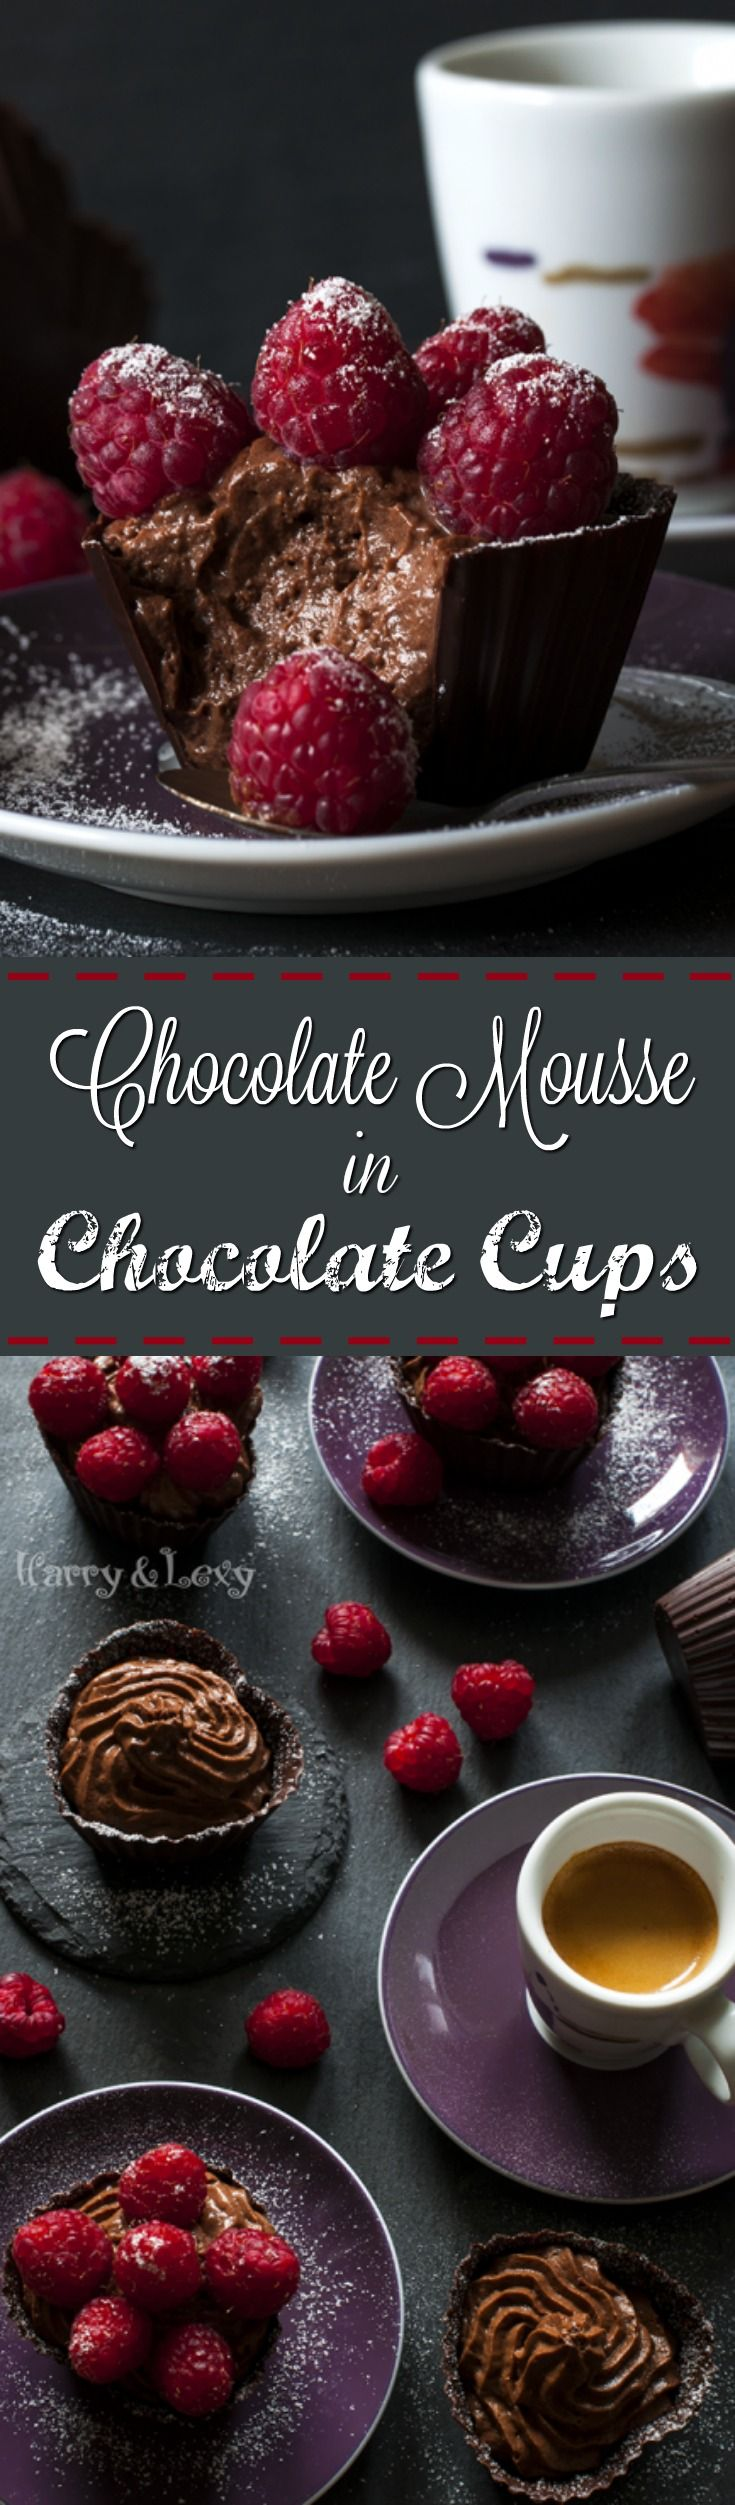 This incredible Chocolate Mousse in a Chocolate Cup is one of the most heavenly desserts you can ever try.